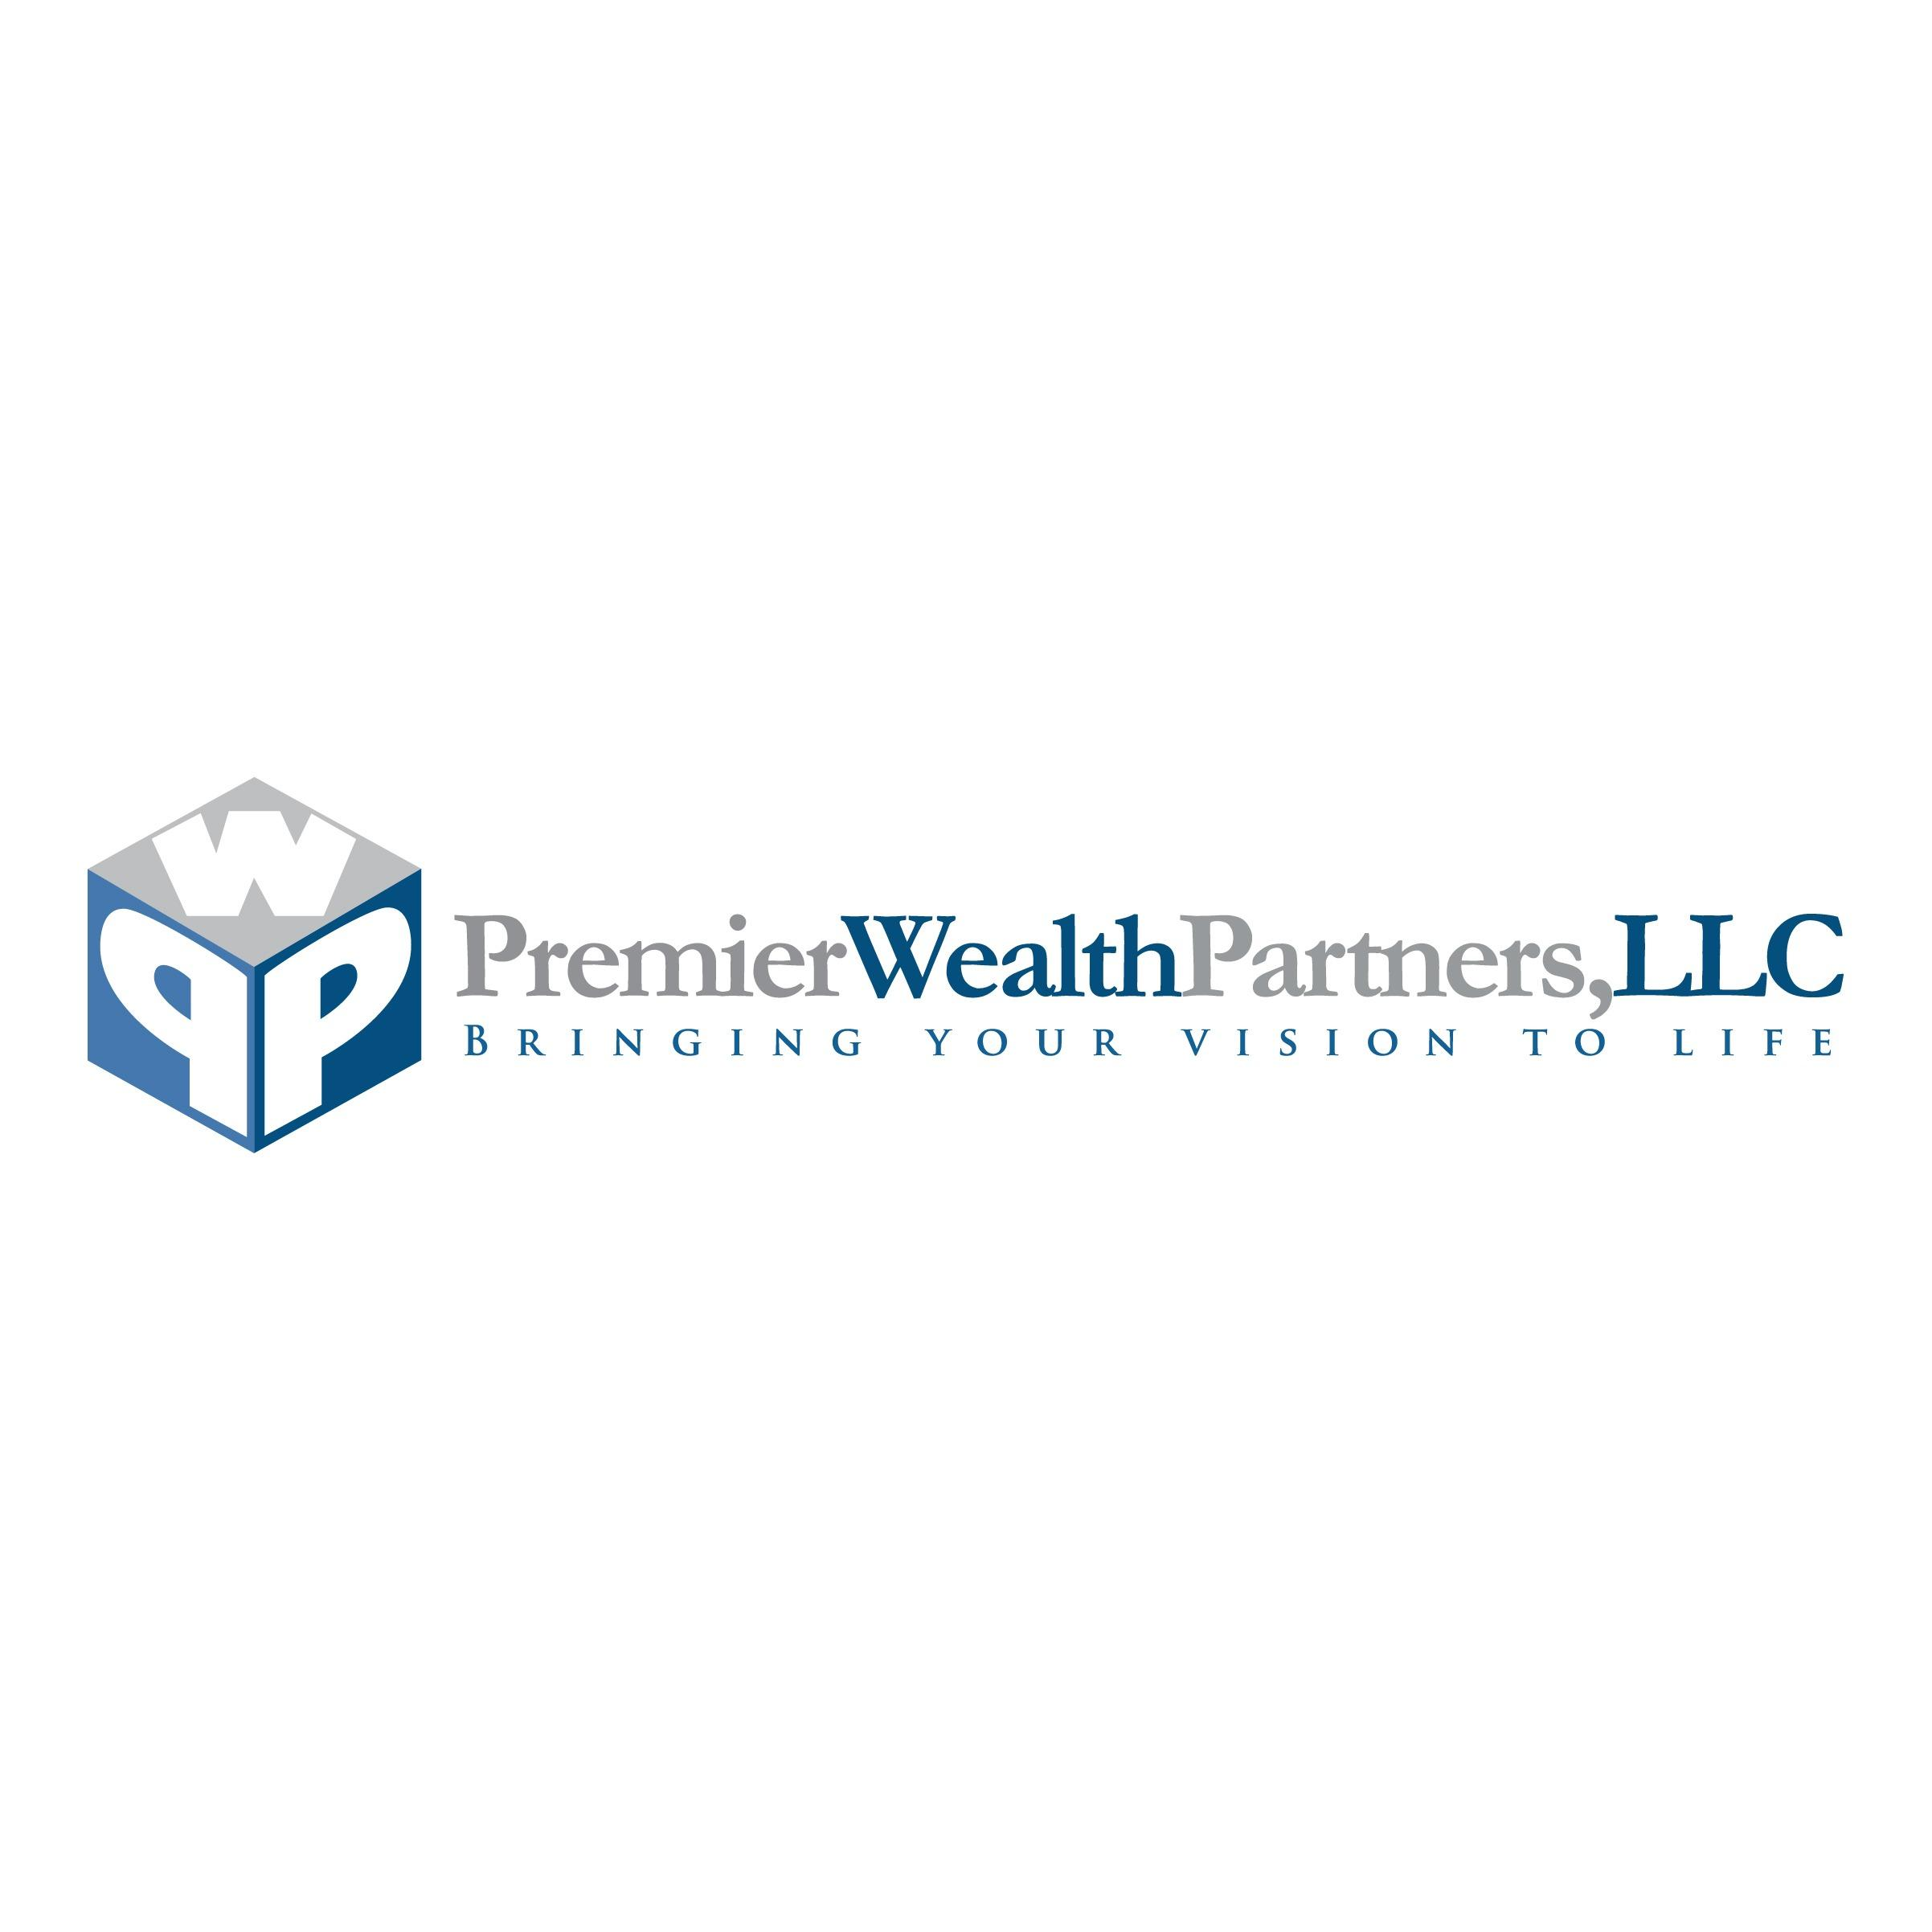 Premier Wealth Partners, LLC